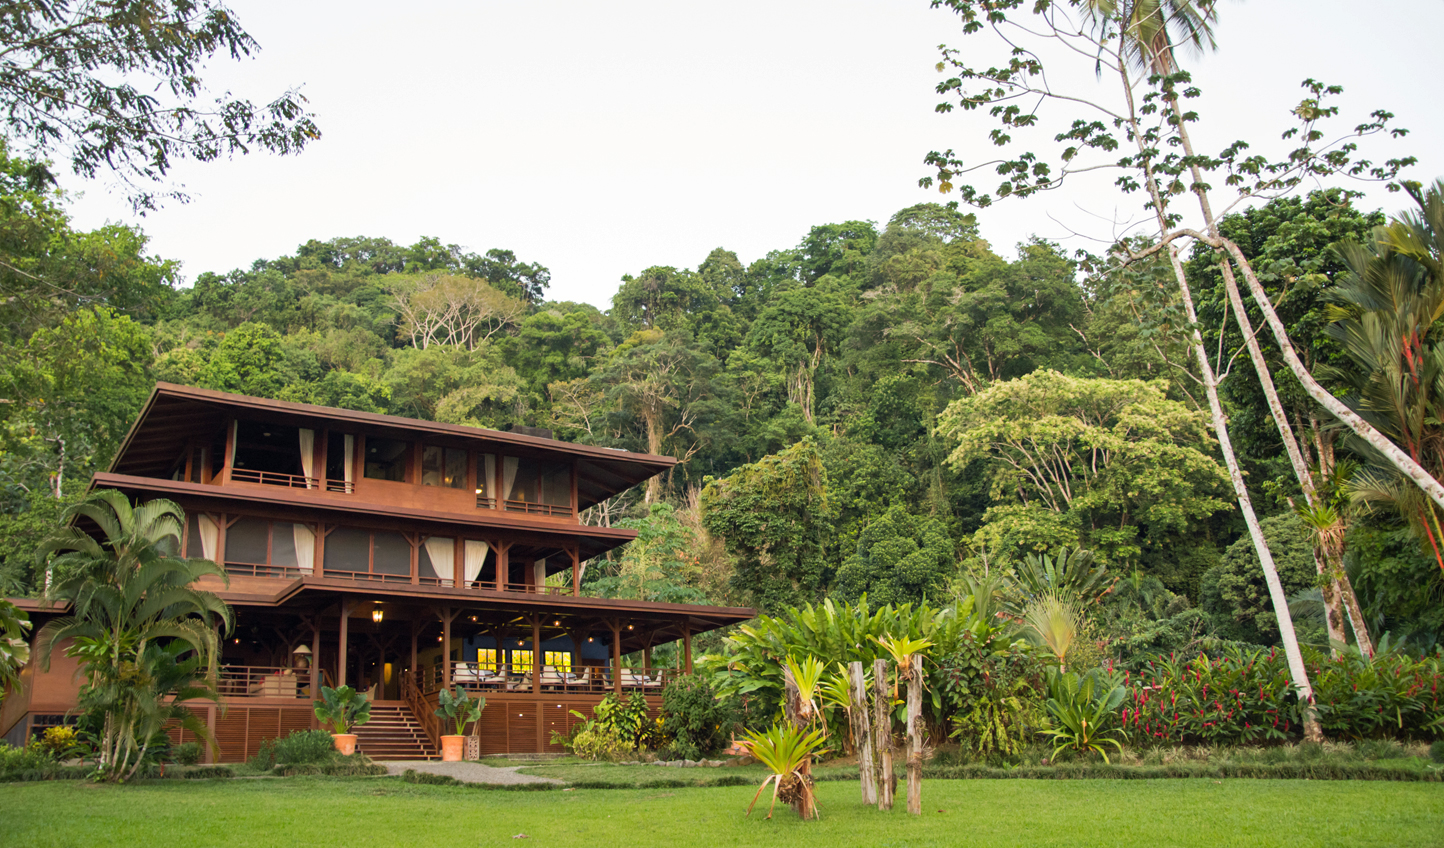 The structure of the lodge mimics it's natural surroundings